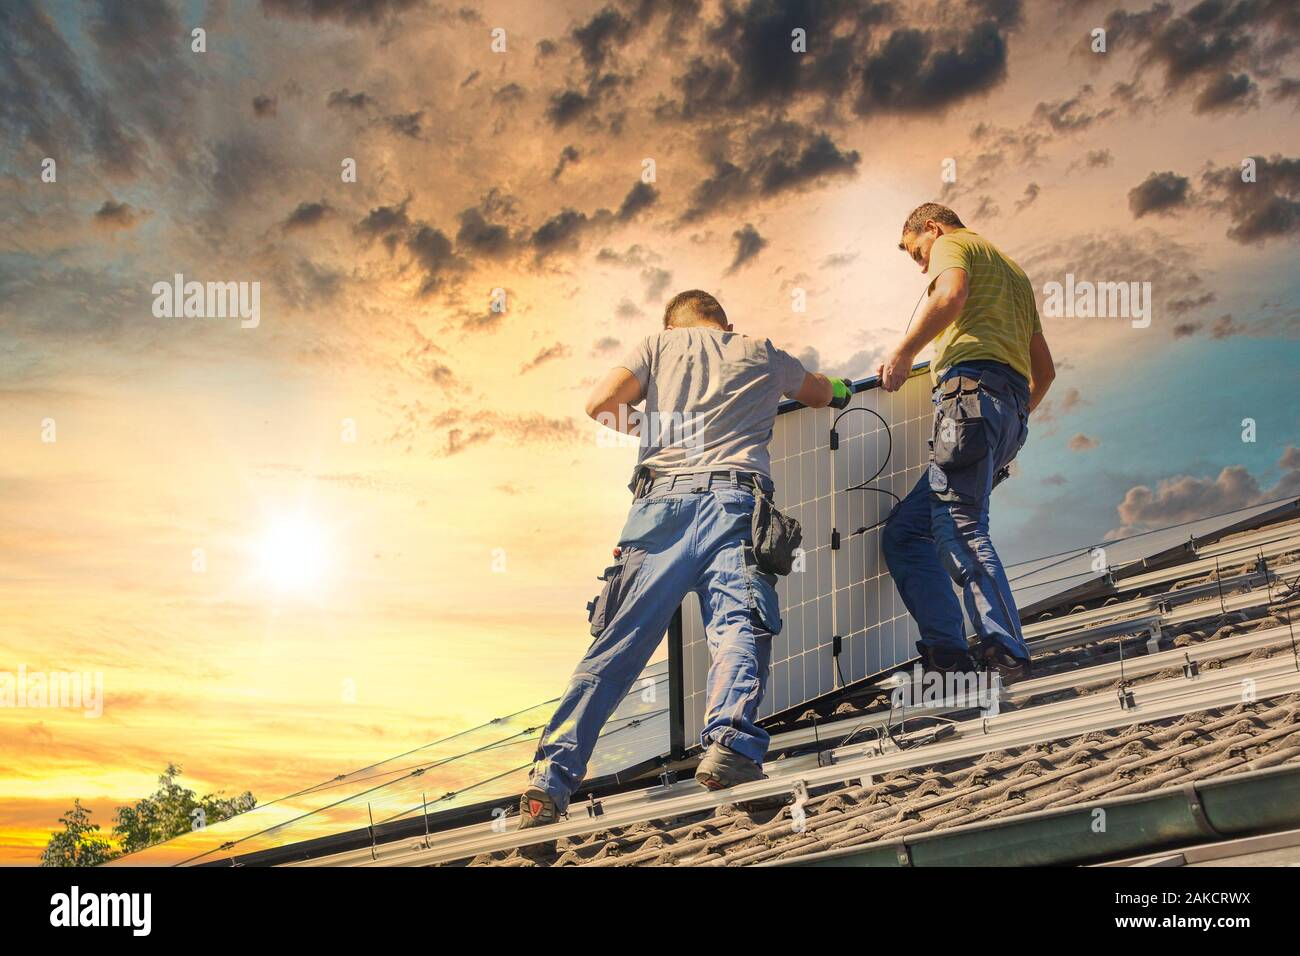 Installing solar photovoltaic panel system. Solar panel technician installing solar panels on roof. Alternative energy ecological concept. Stock Photo